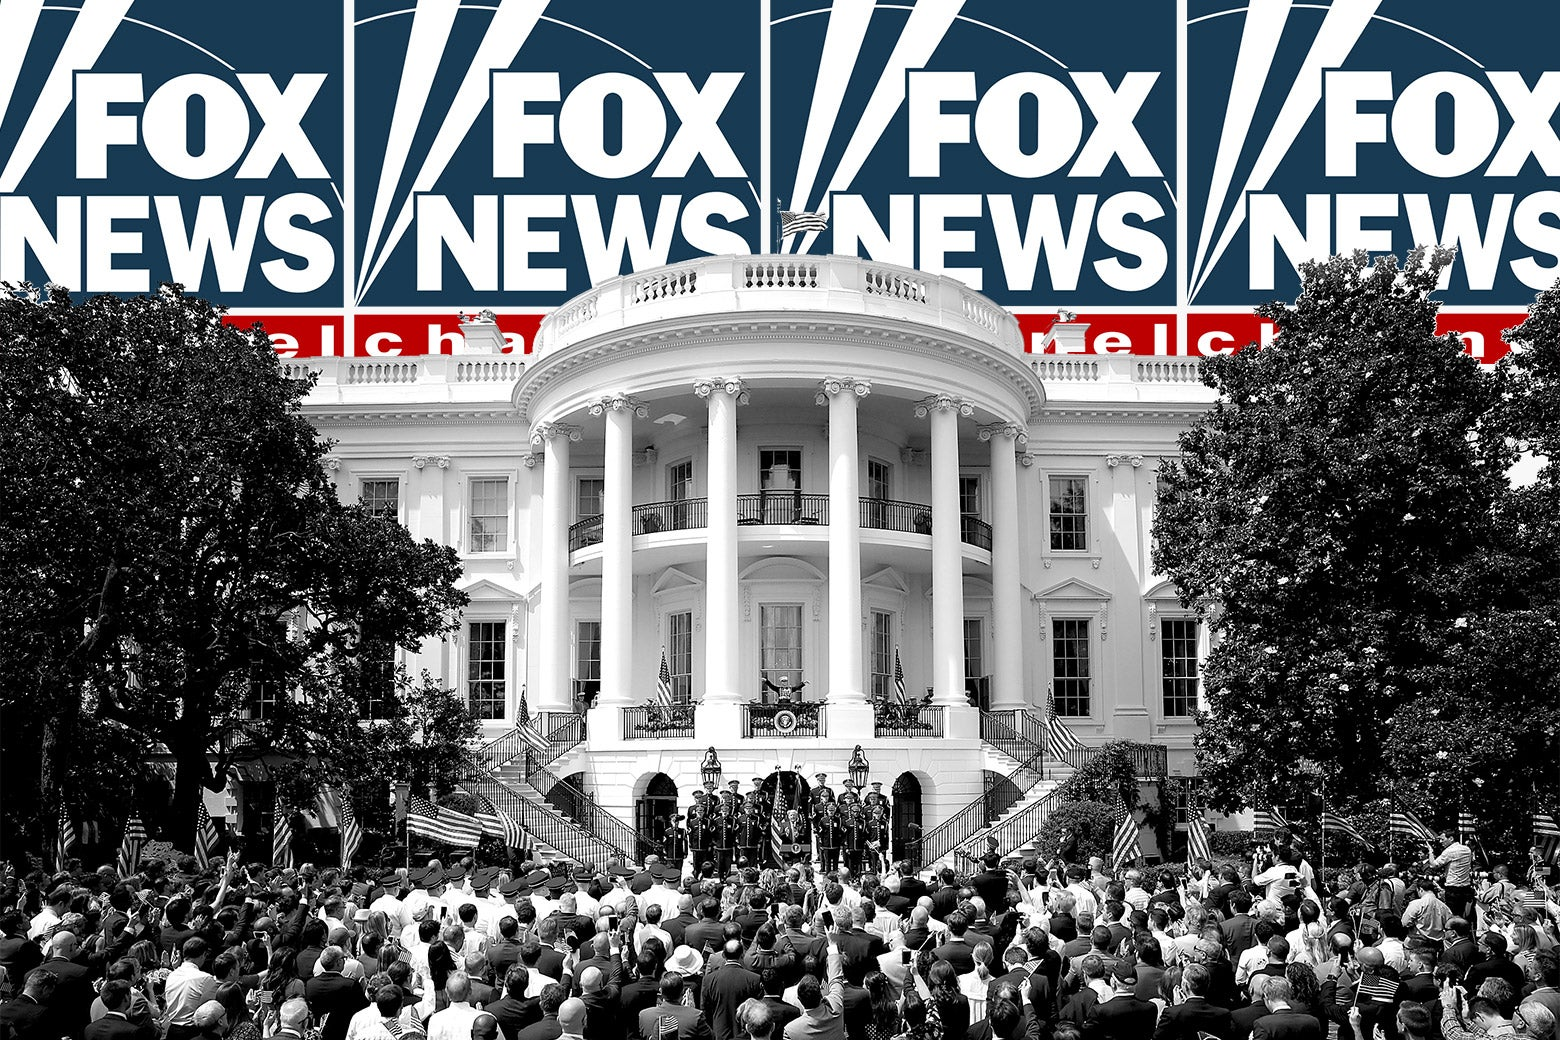 The Fox News logo displayed multiple times behind the White House